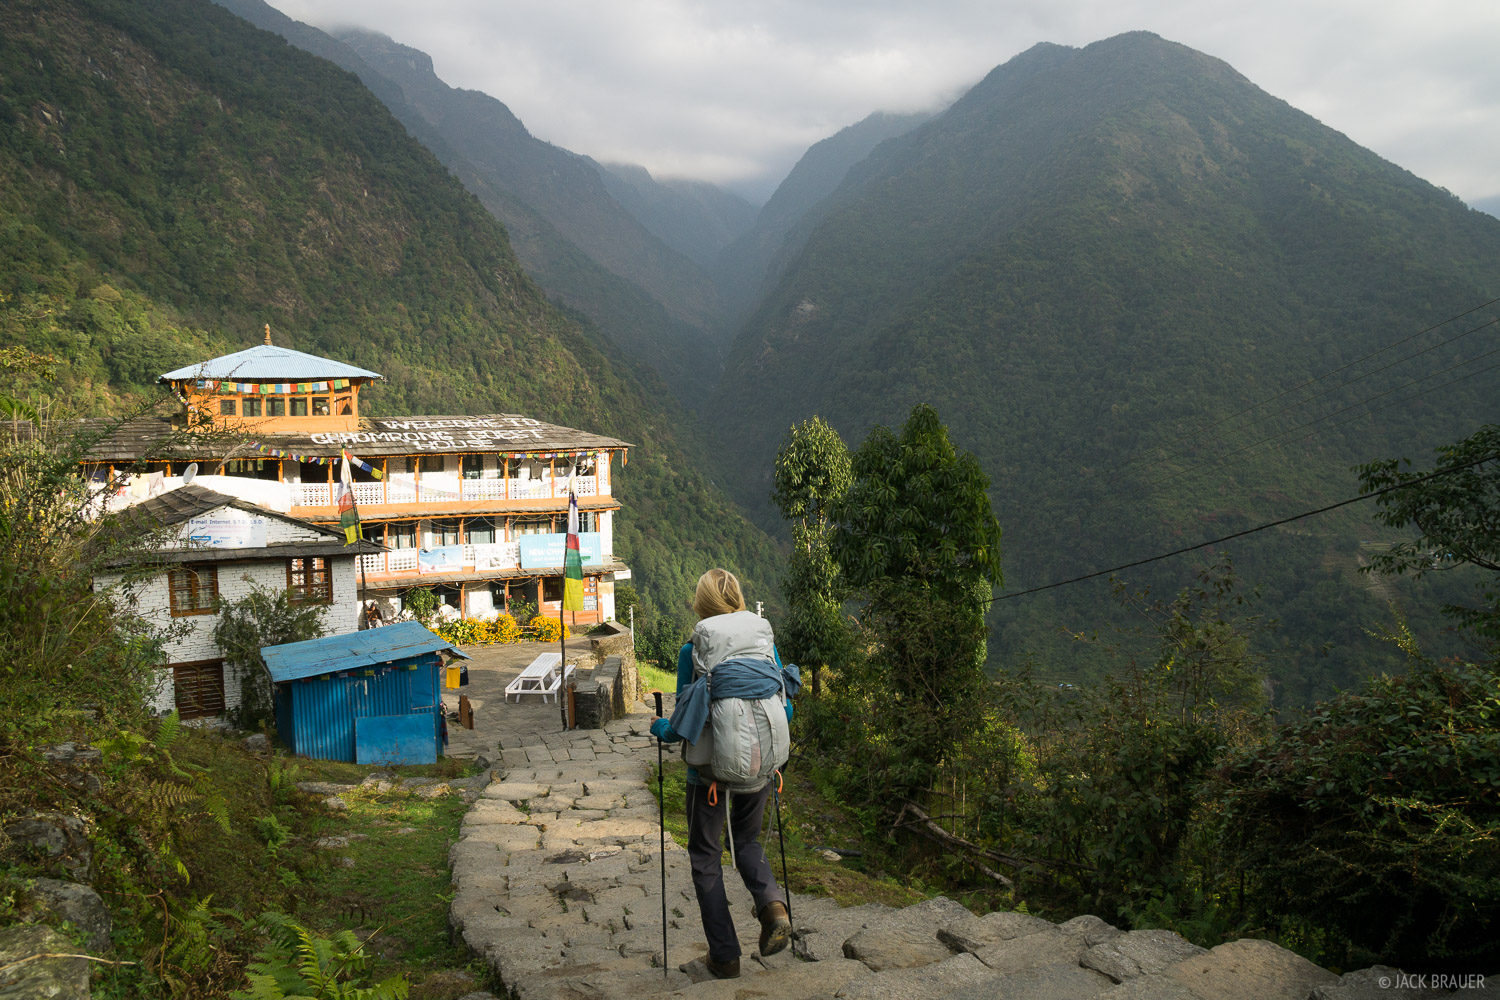 Hiking through the village of Chomrong in the morning.